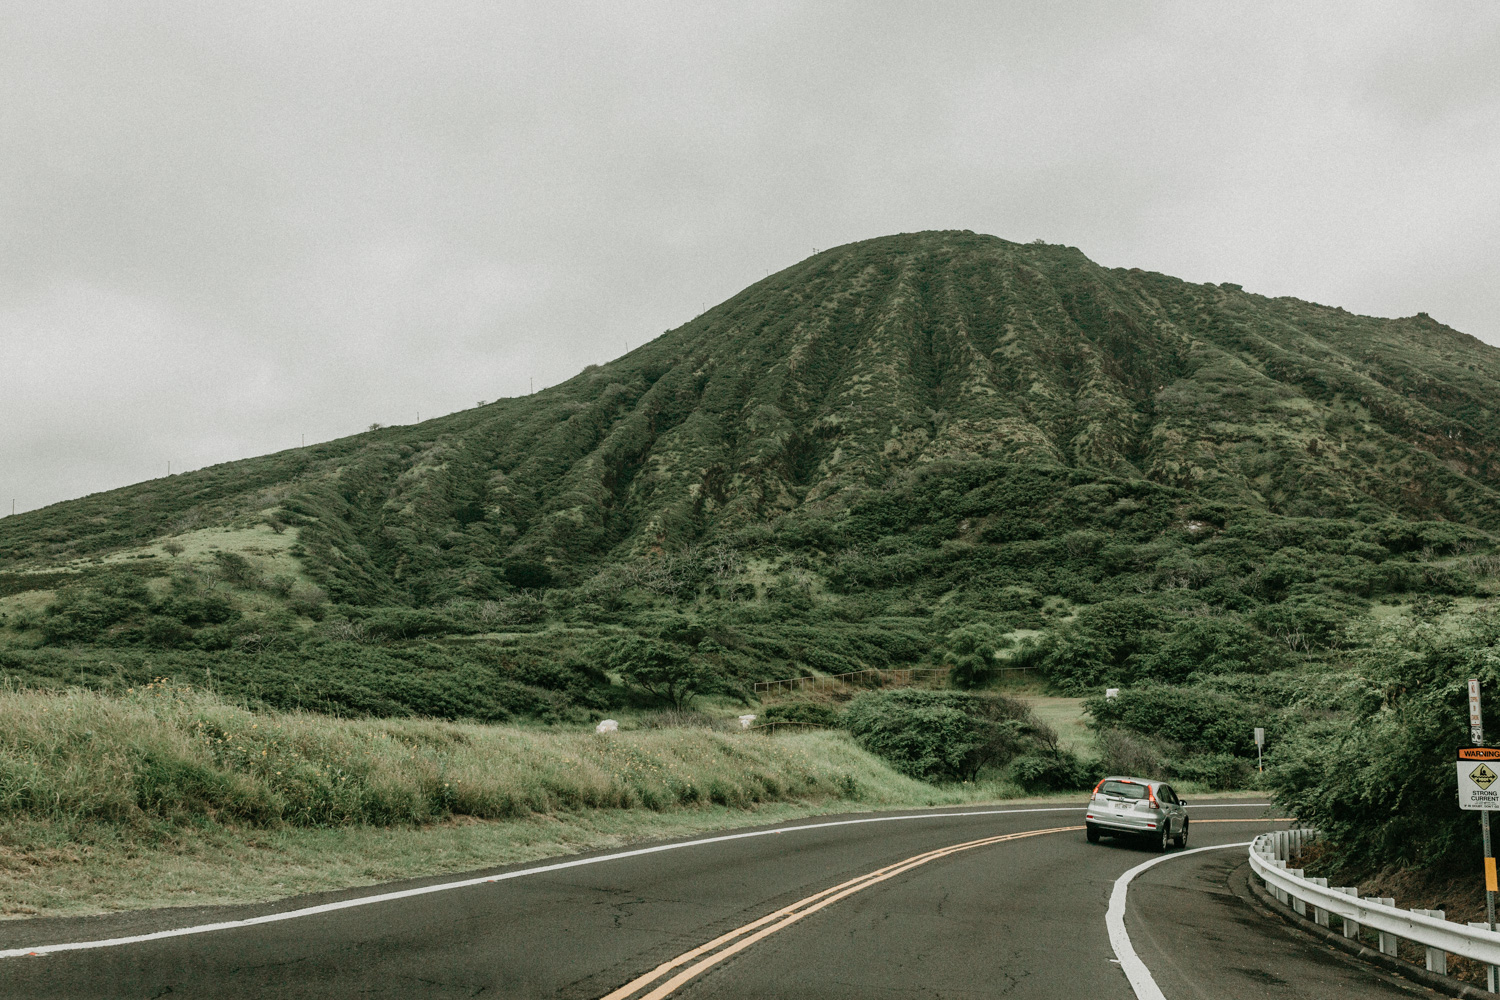 Every time we drove through the mountain via the highway, the mountain view always shook me so much. It's so close, so rich and giving. And it rained a bit at certain section and just created even more moods.